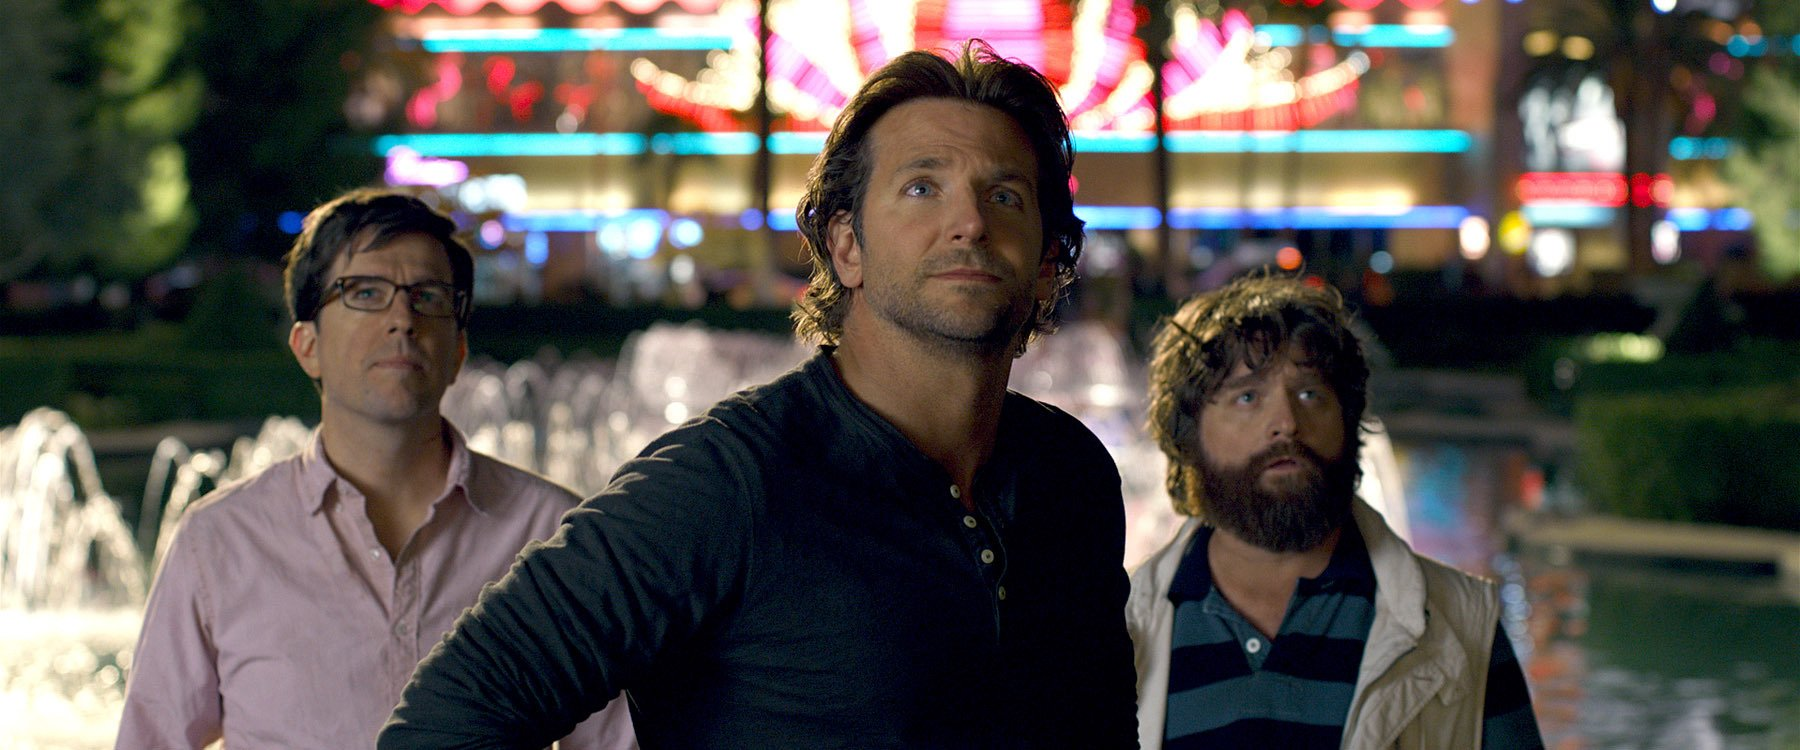 Bradley Cooper, Photo by Courtesy Warner Bros. Pictures - © 2013 WARNER BROS. ENTERTAINMENT INC. AND LEGENDARY PICTURES